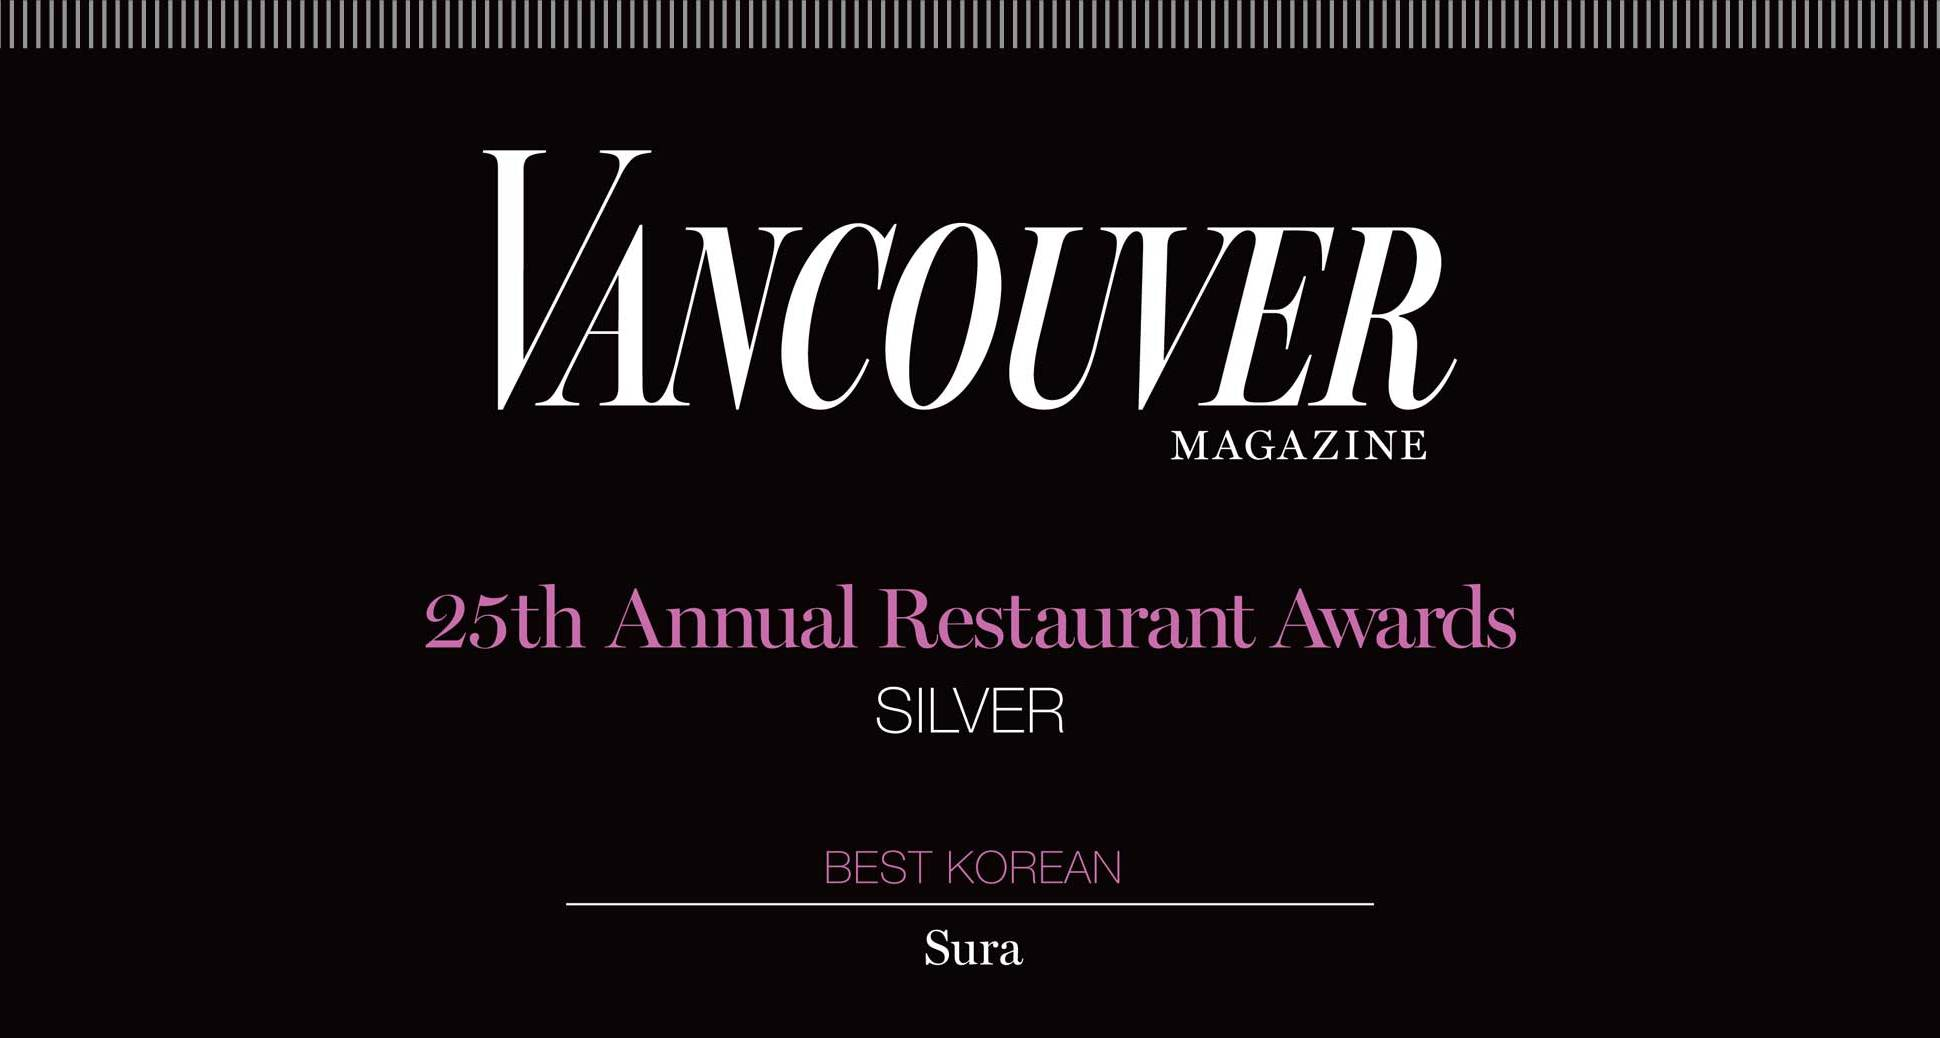 Sura is the best Korean silver winner of Vancouver magazine's 2014 restaurant awards!